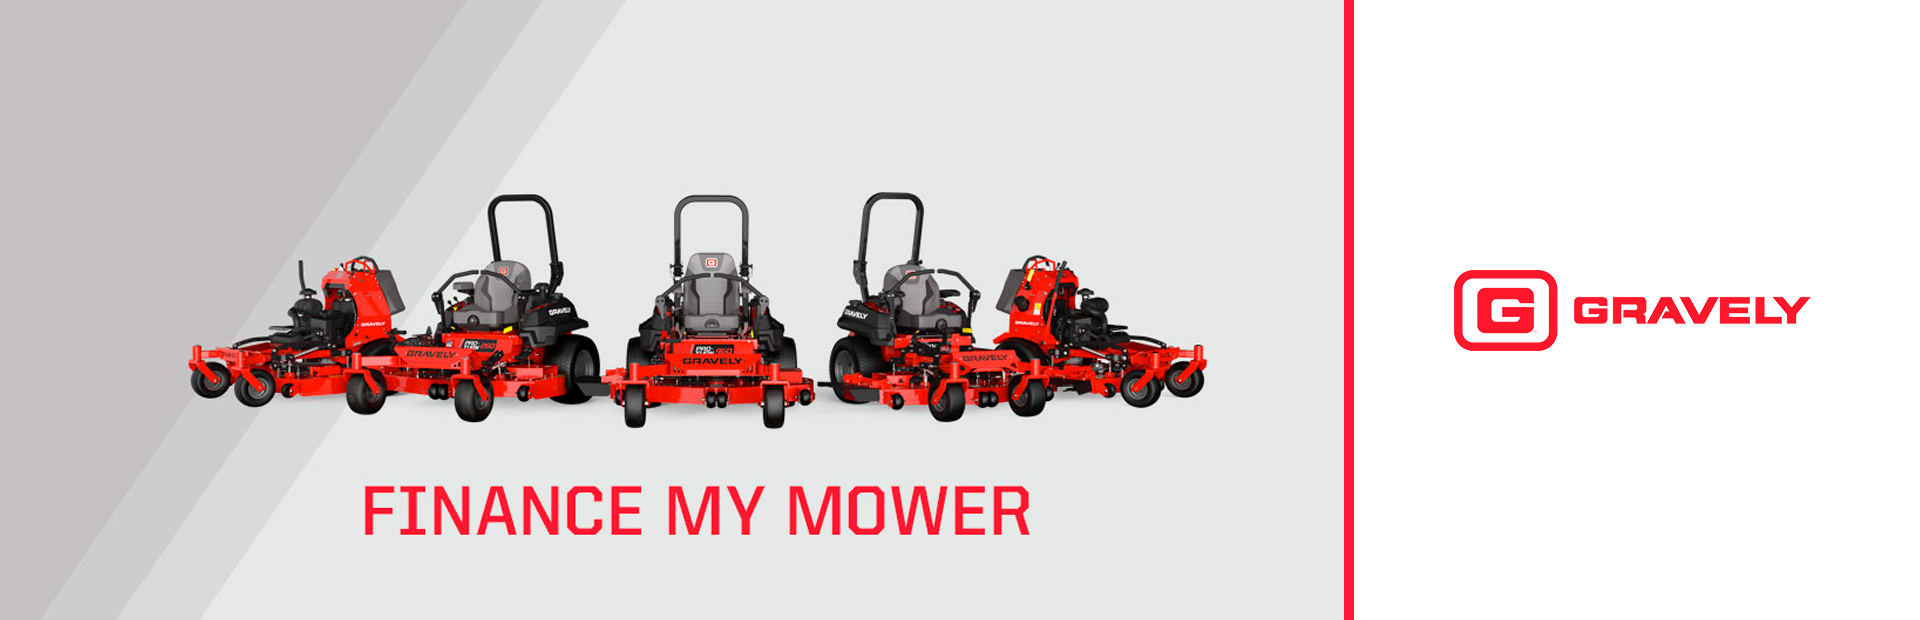 Gravely: FINANCE MY MOWER